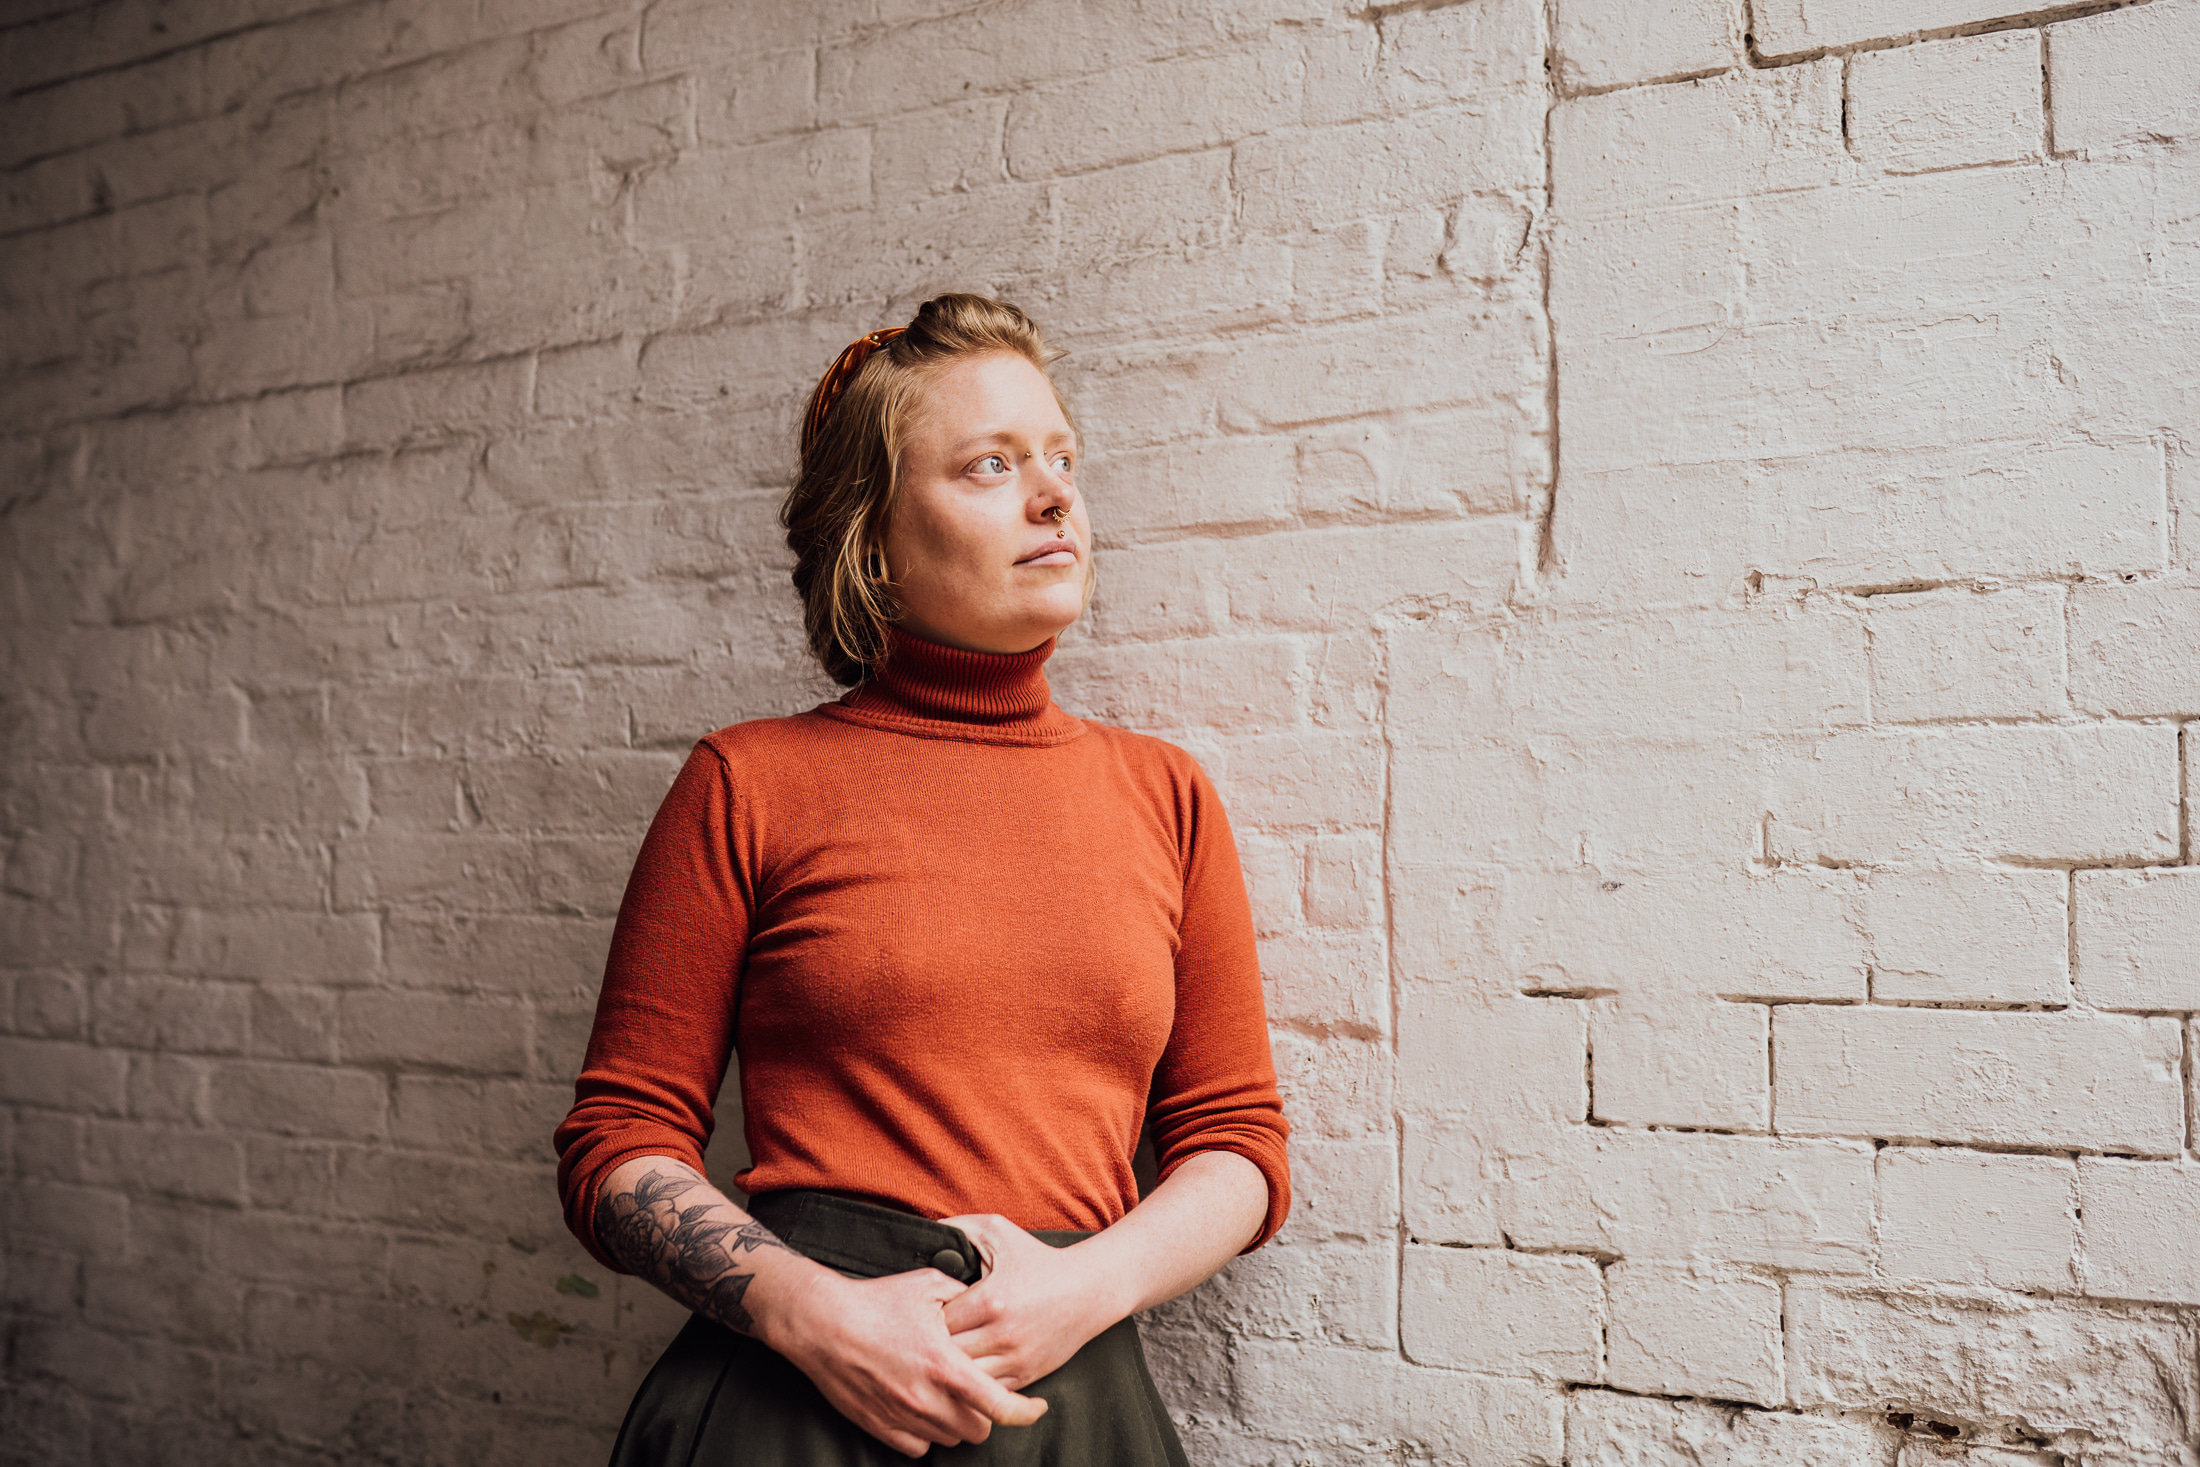 In this image, Jess from Rogue Piercing is leaning against a white, brick wall and wearing an orange top.